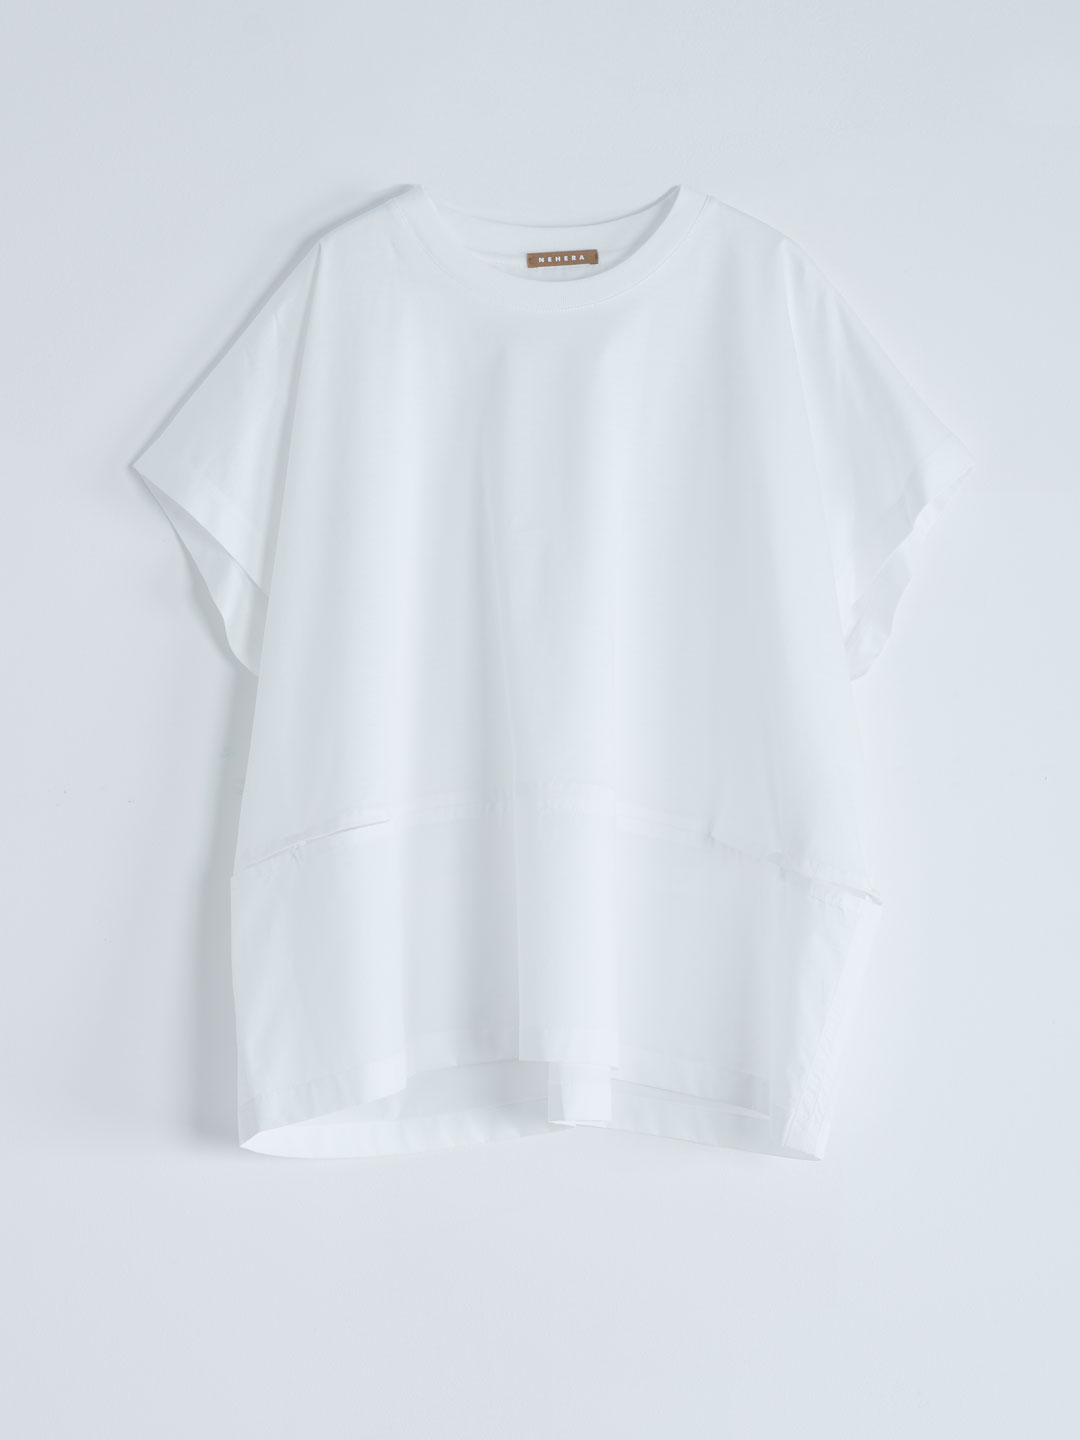 Light Jersey Cotton Top - White